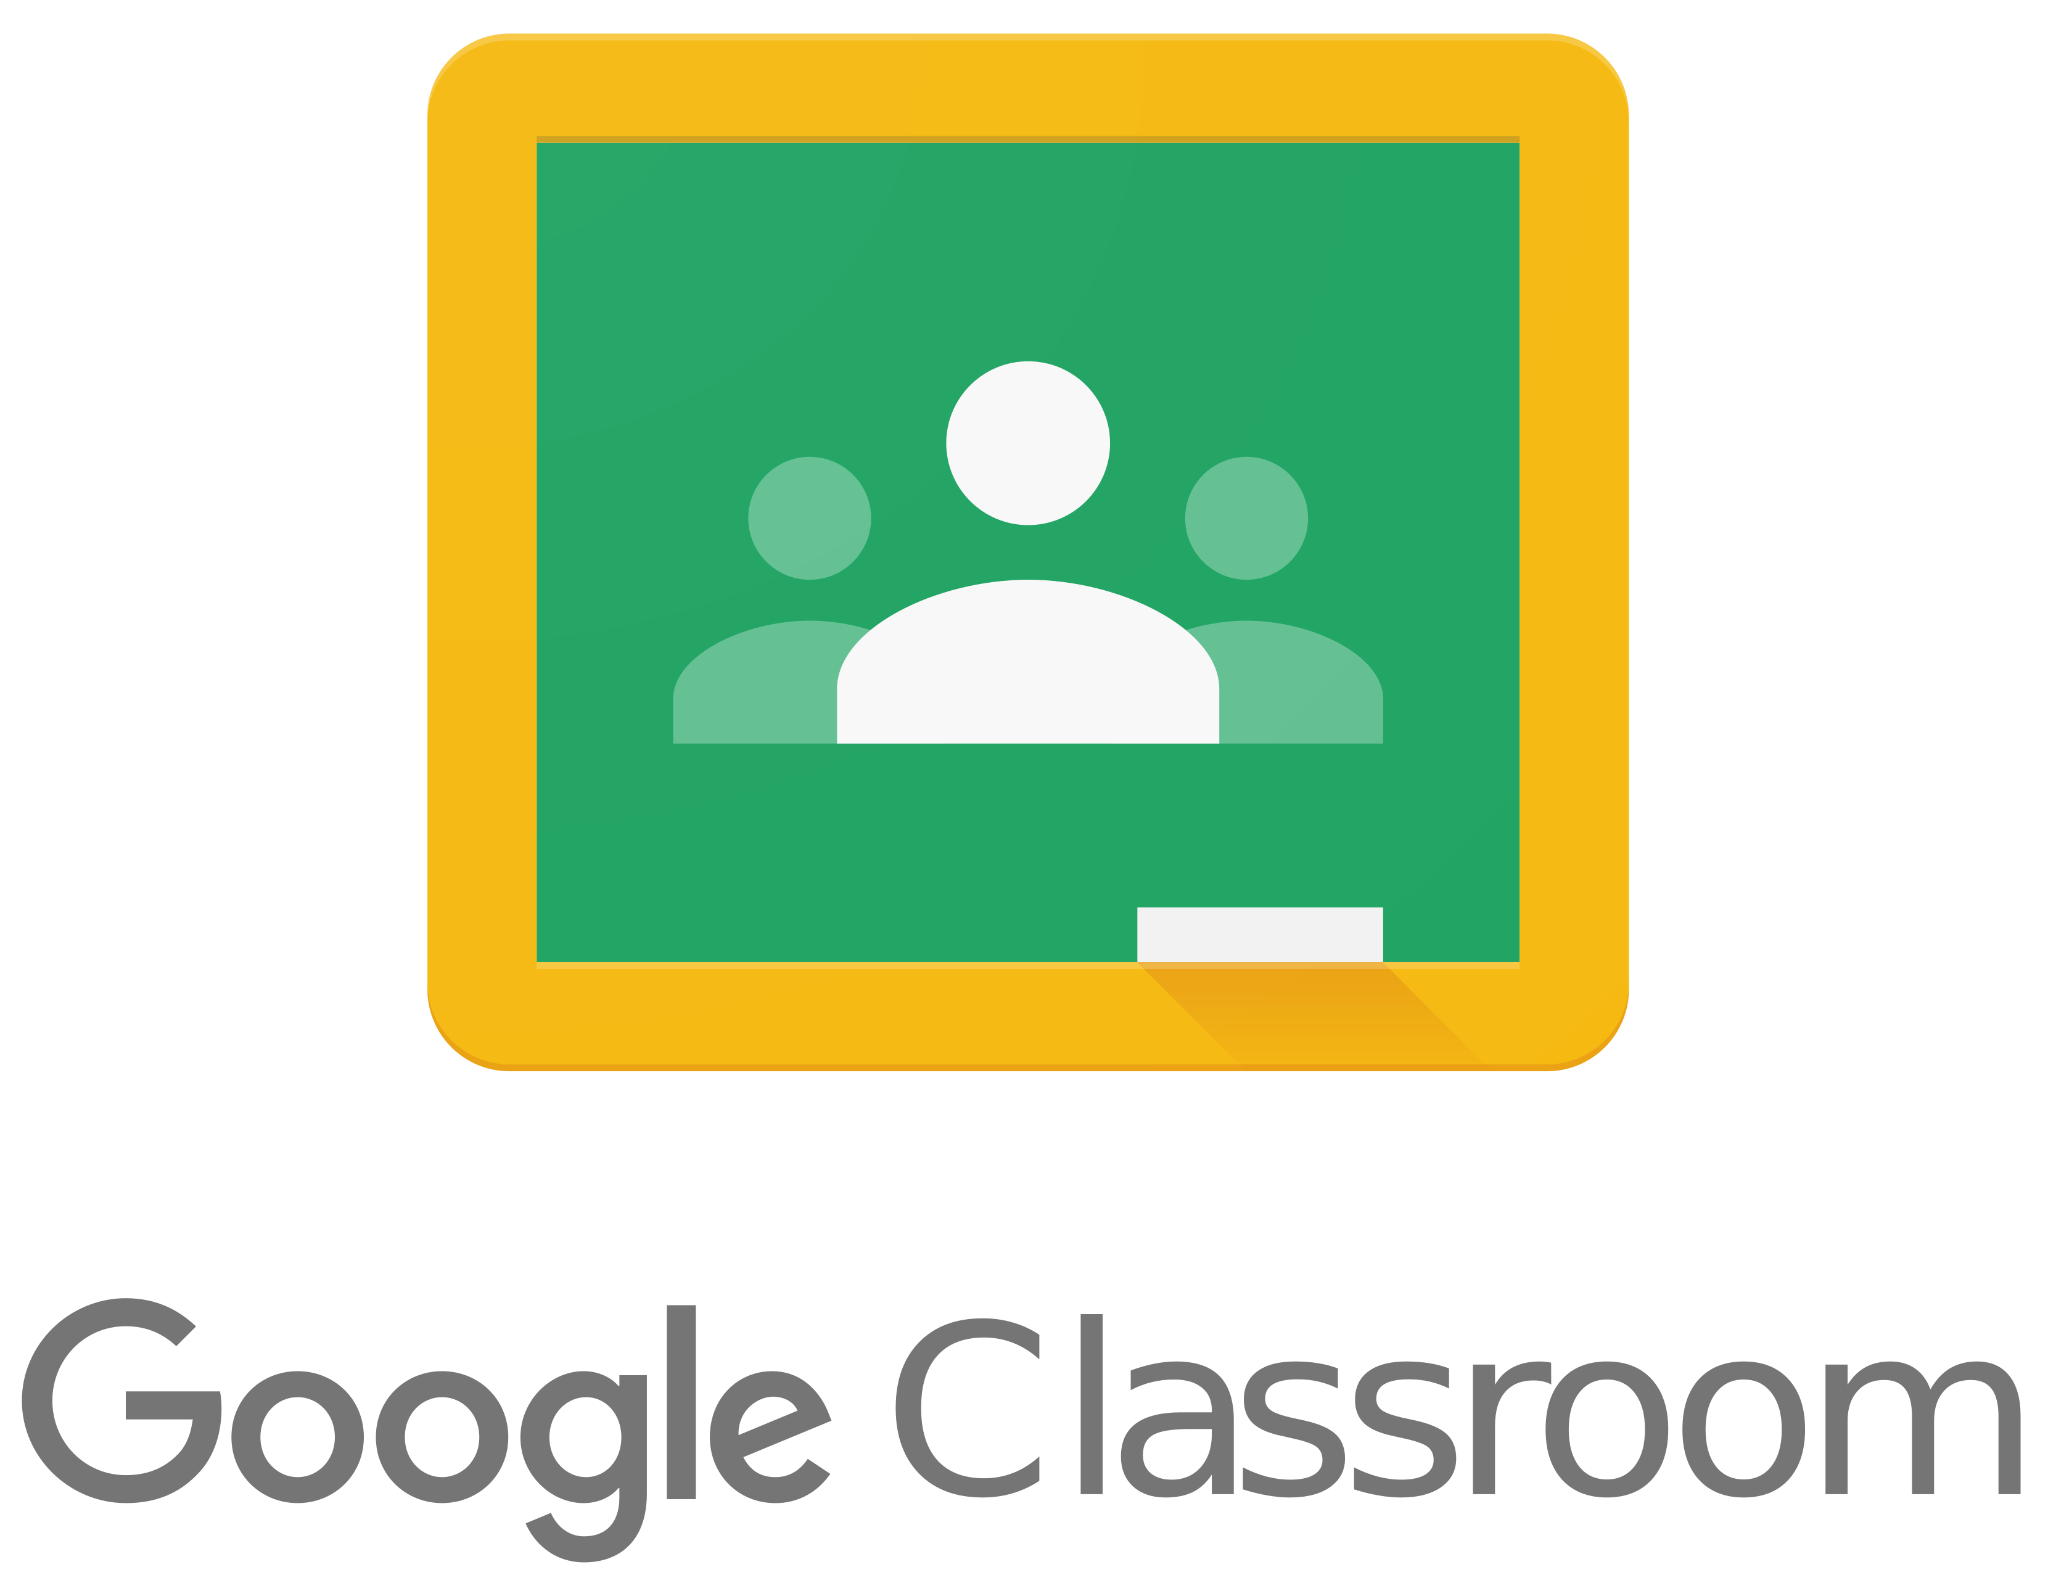 Google Classroom Logo - a green square with yellow outline and 3 silhouettes of people in the middle.